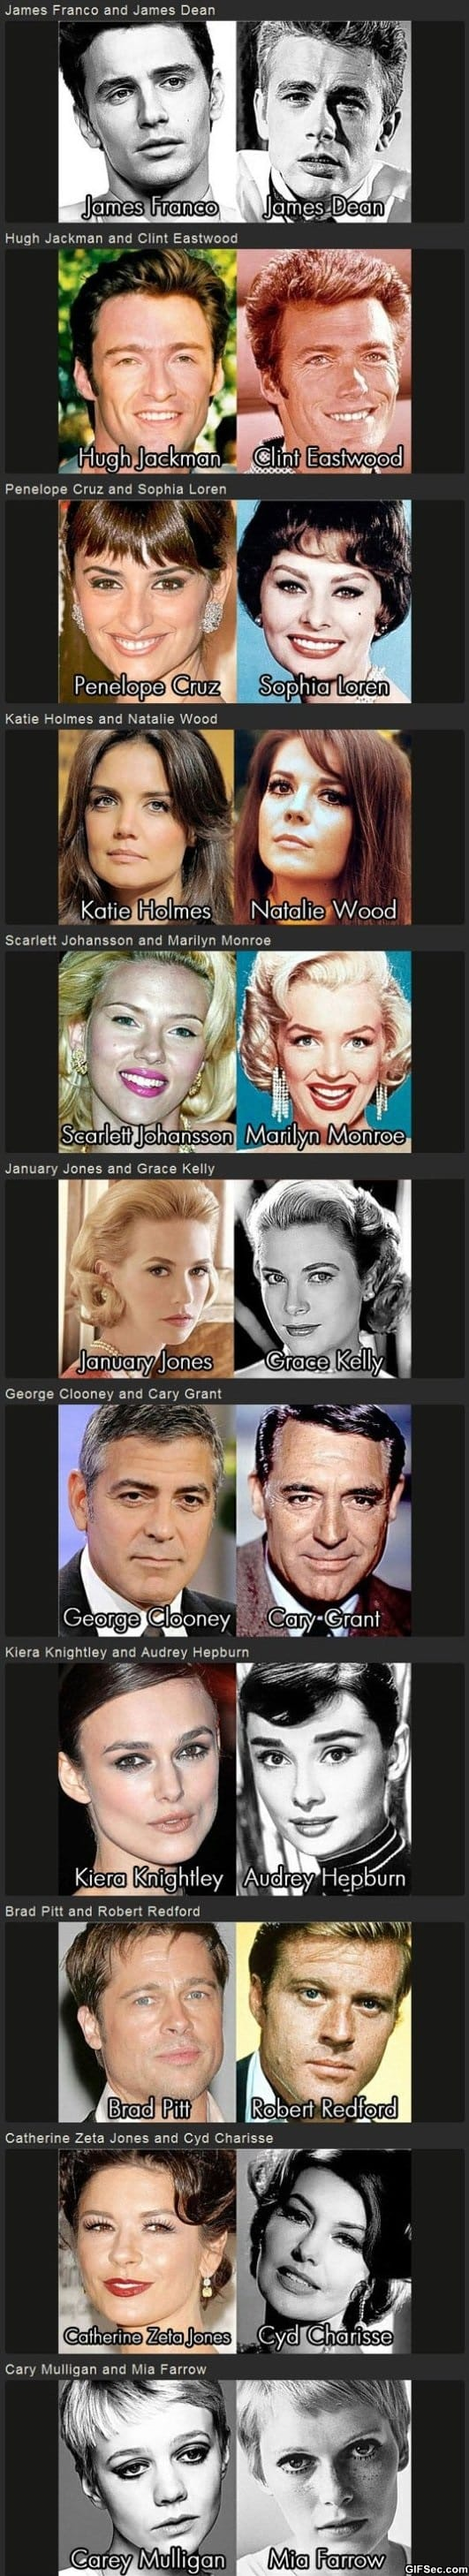 movie-stars-and-their-classic-film-lookalikes